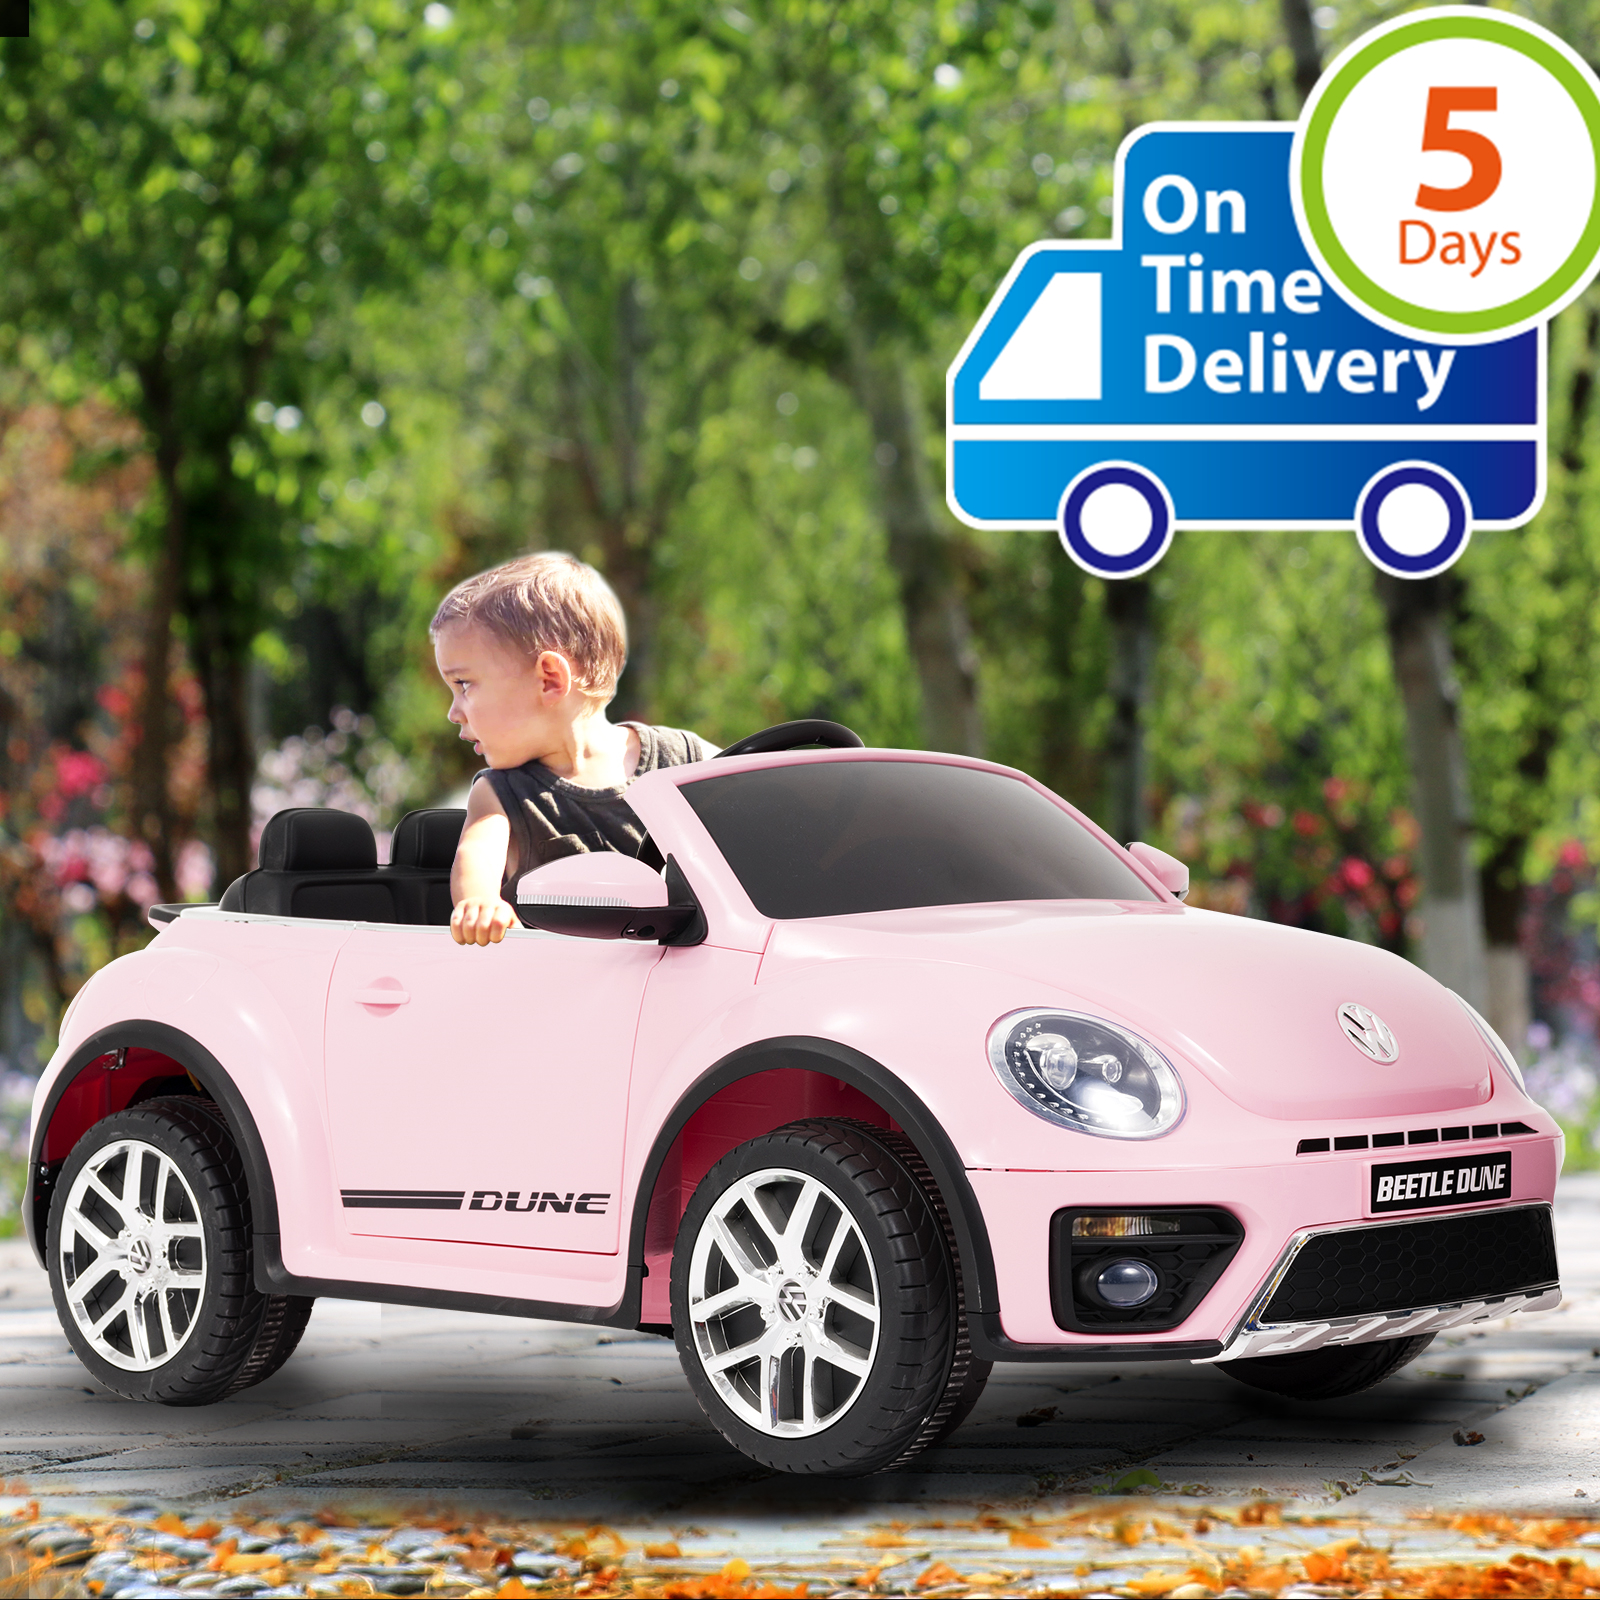 Uenjoy Electric Ride on Cars 12V Battery Lovely VW Beetle Kids Vehicles Cars Double-Drive Car for Kids W/ Remote ...Uenjoy Electric Ride on Cars 12V Battery Lovely VW Beetle Kids Vehicles Cars Double-Drive Car for Kids W/ Remote ...